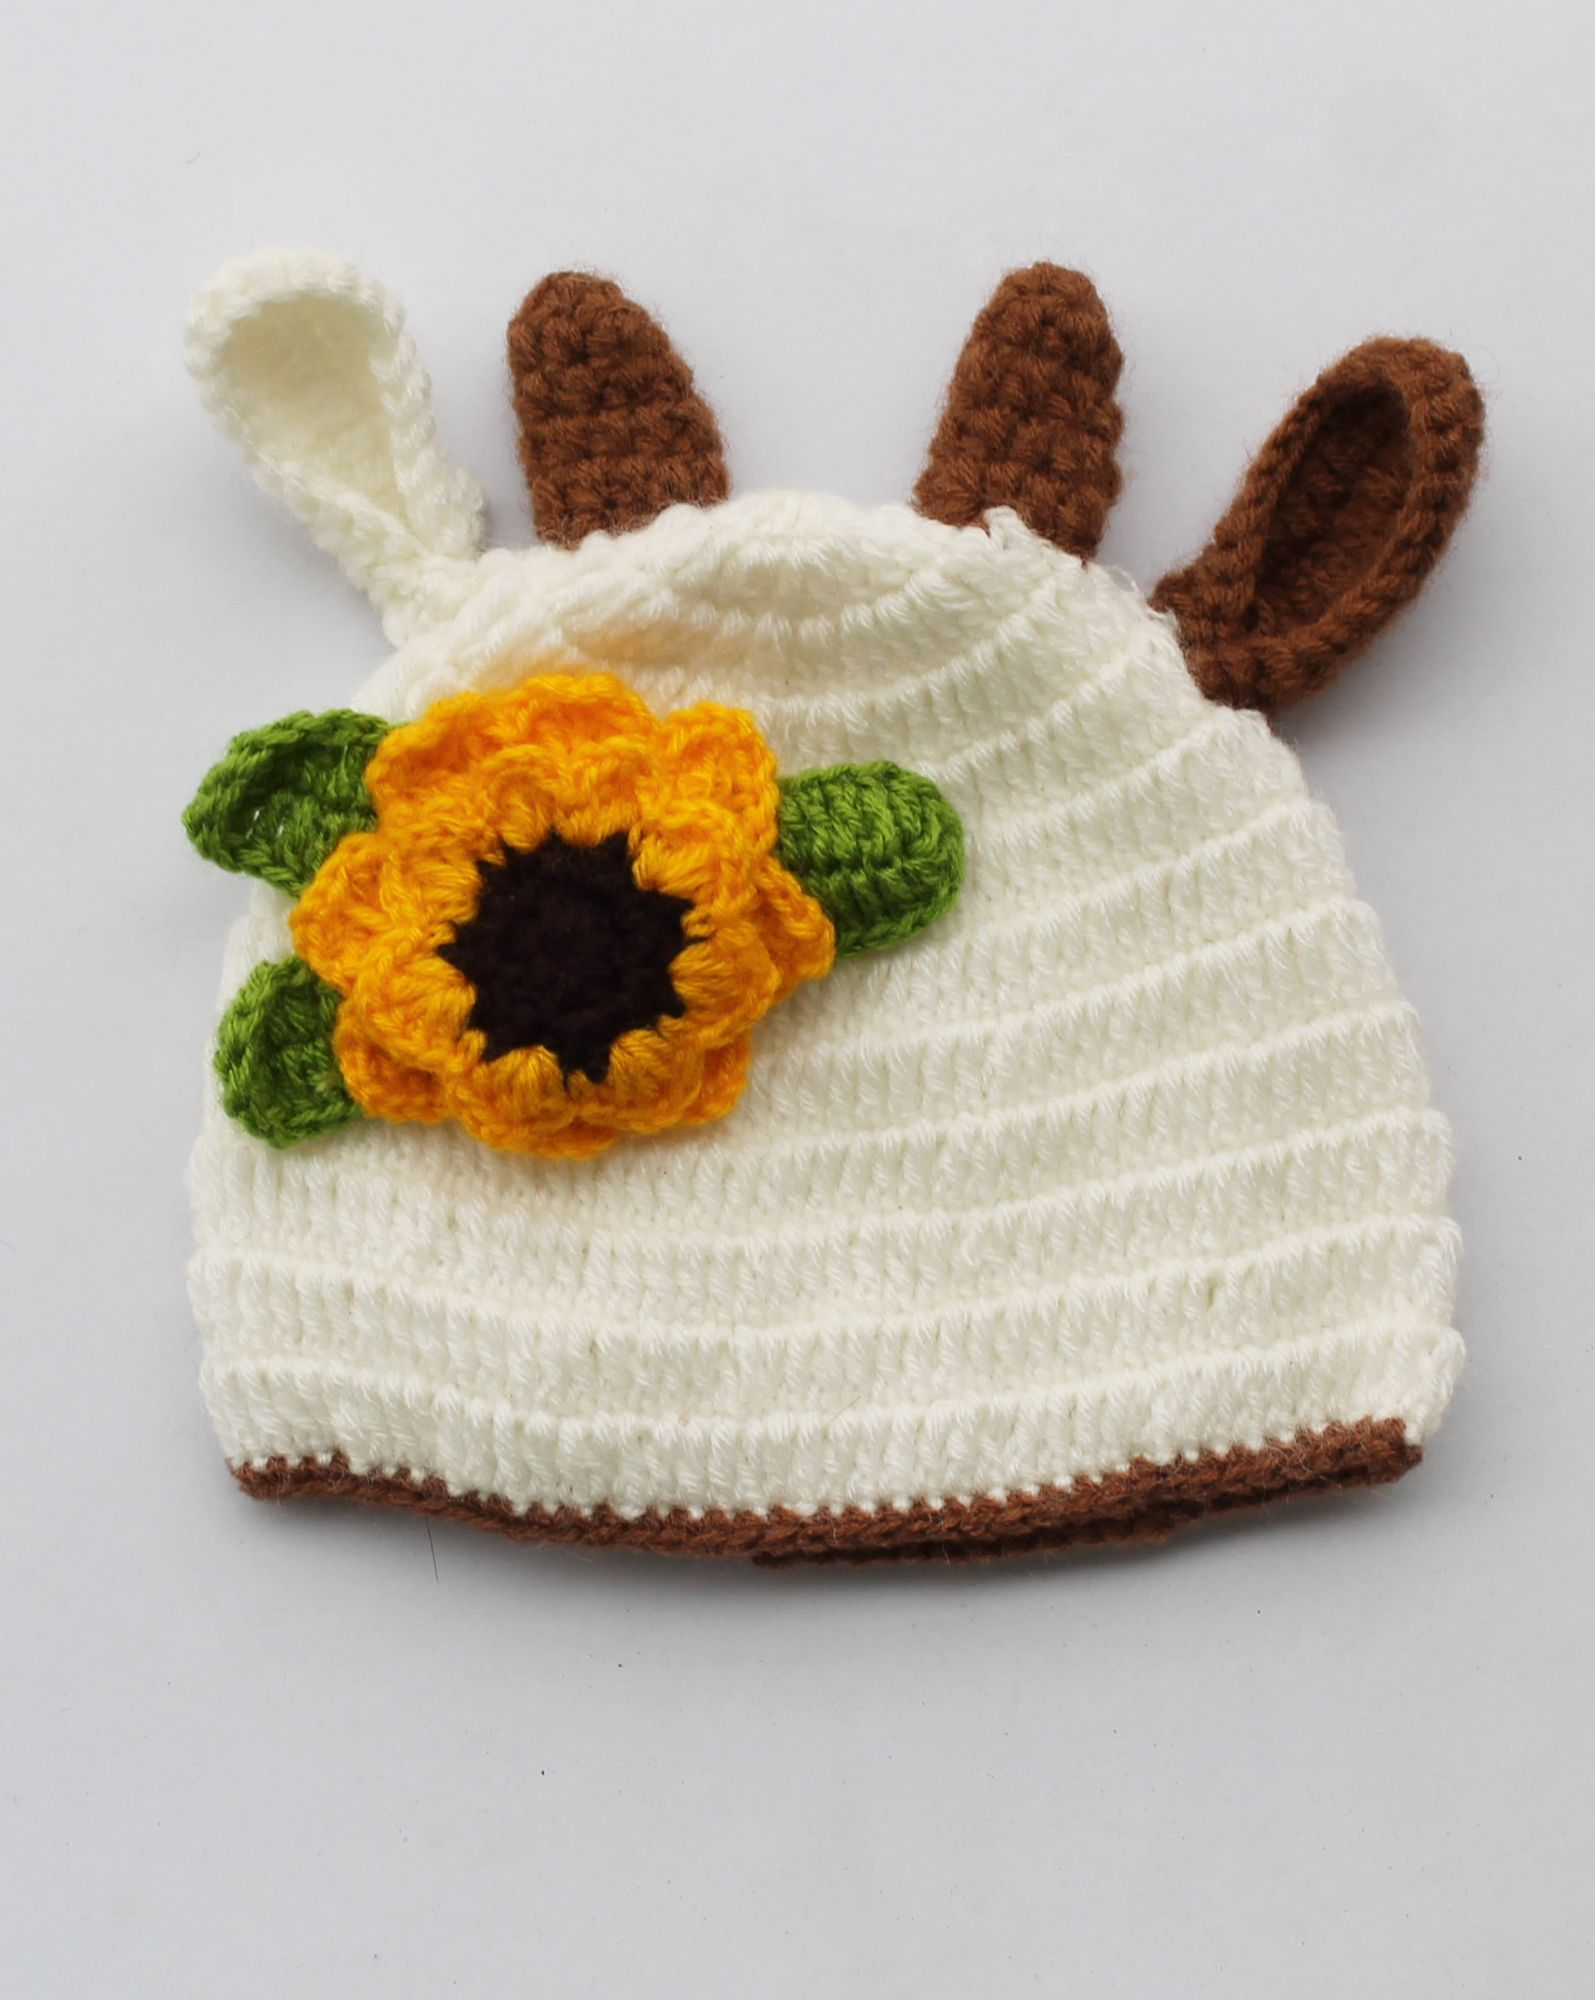 Handmade Crochet Sunflower Pattern Cap for Kids - Off-white | Woonie